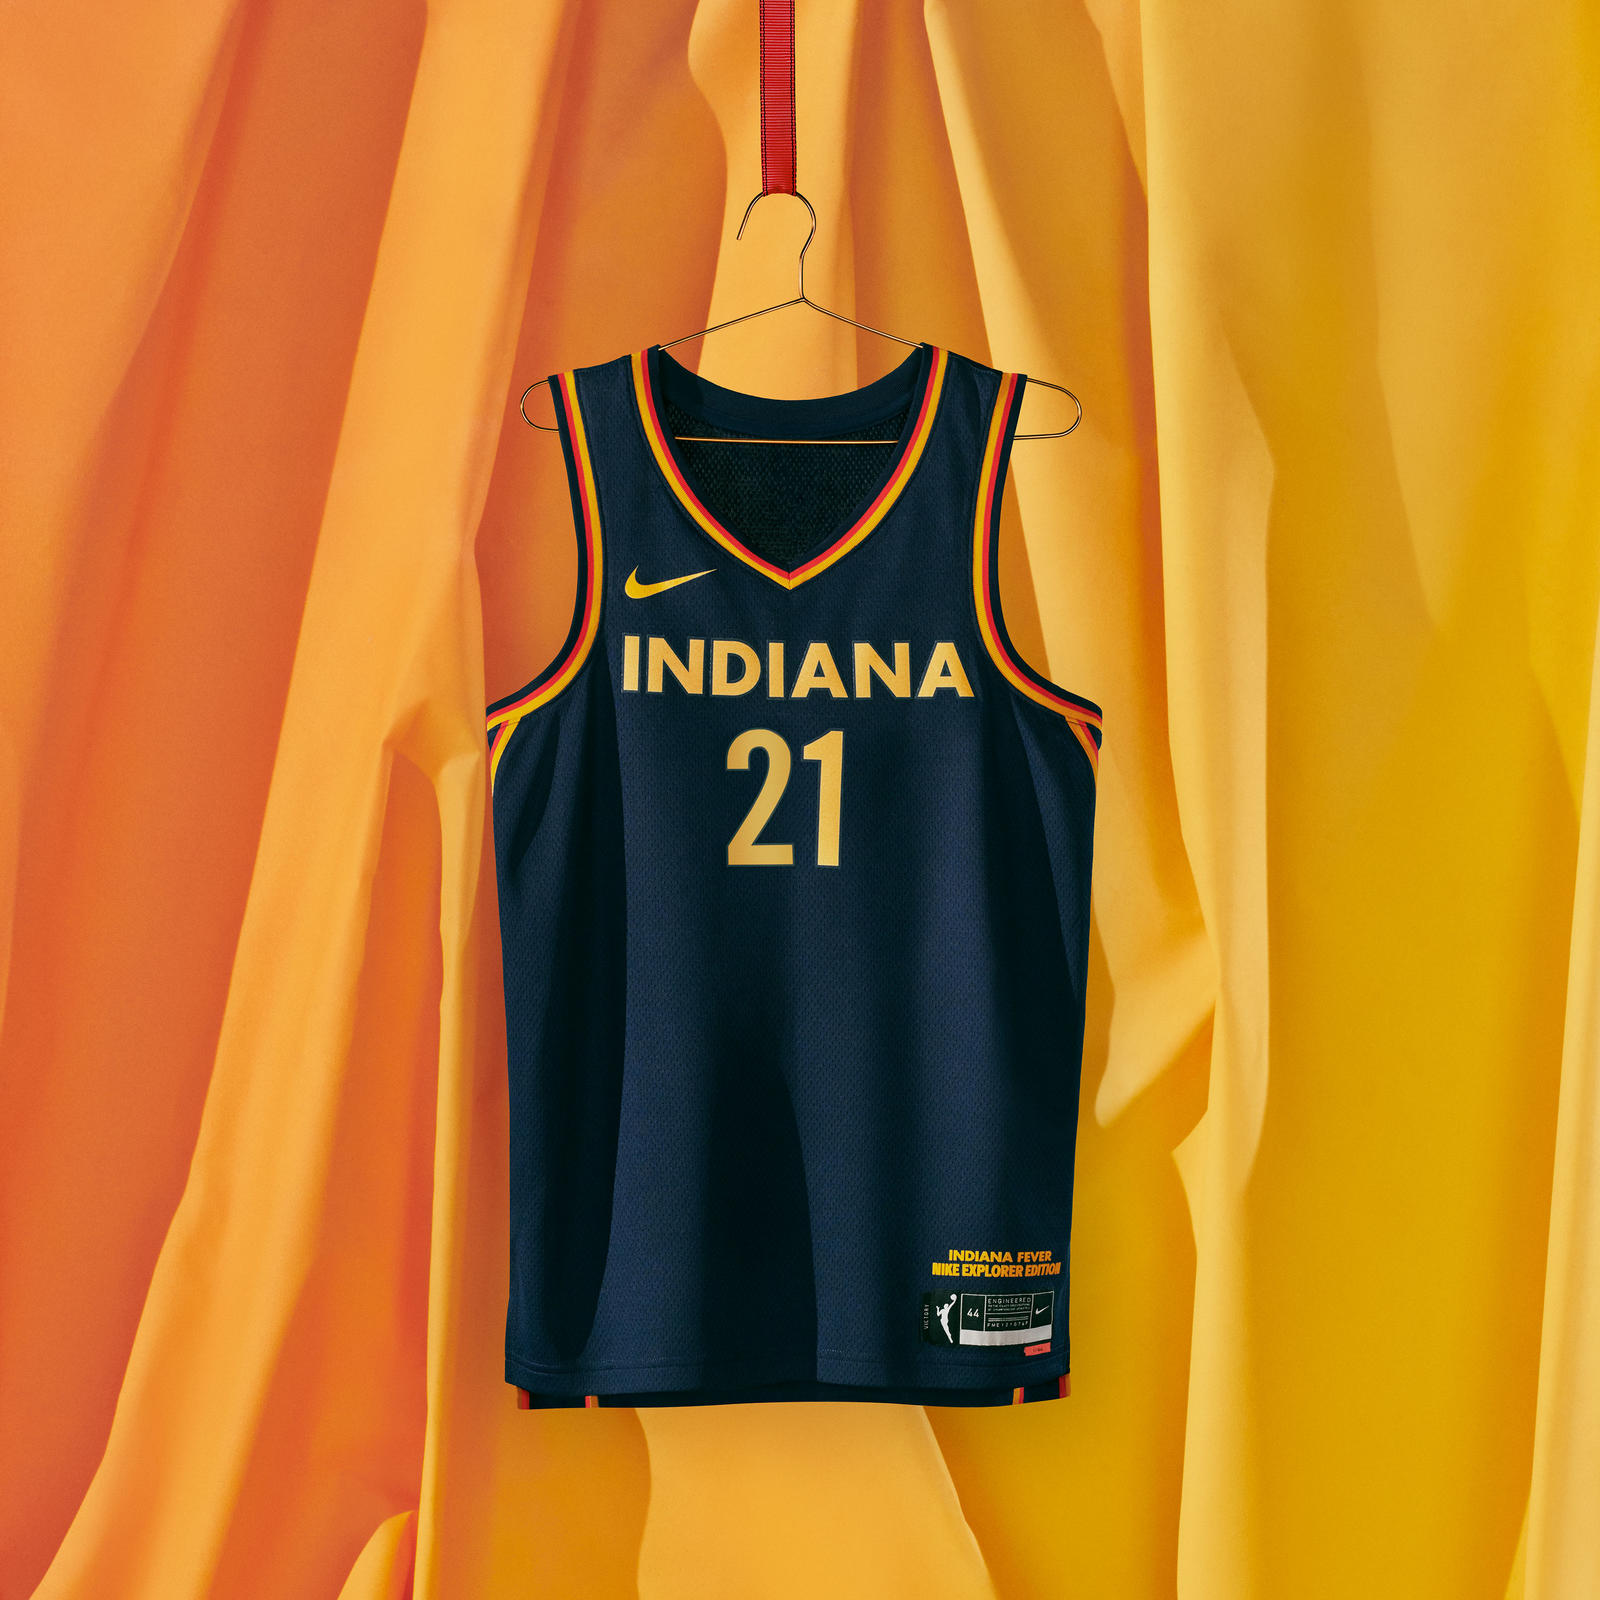 Nike WNBA 2021 Uniform Editions  6